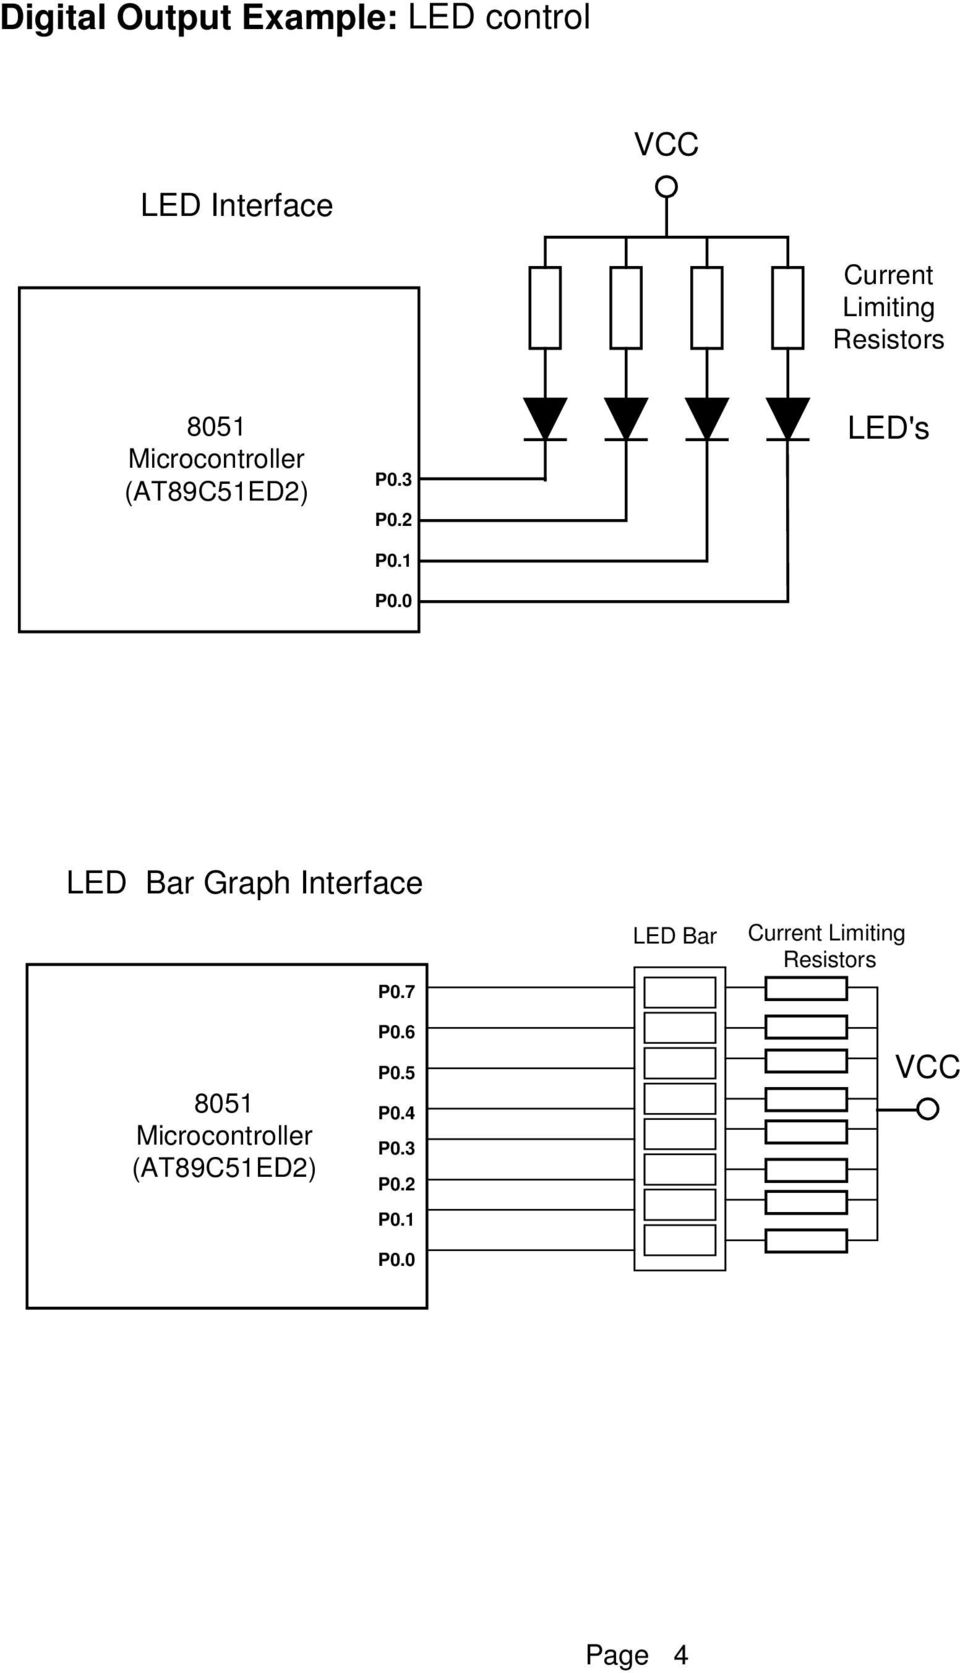 Microcontroller Display Interfacing Techniques Pdf Circuitdiagramtointerfacebuzzerwithavrslicker 0 Leds Led Bar Graph Interface P0